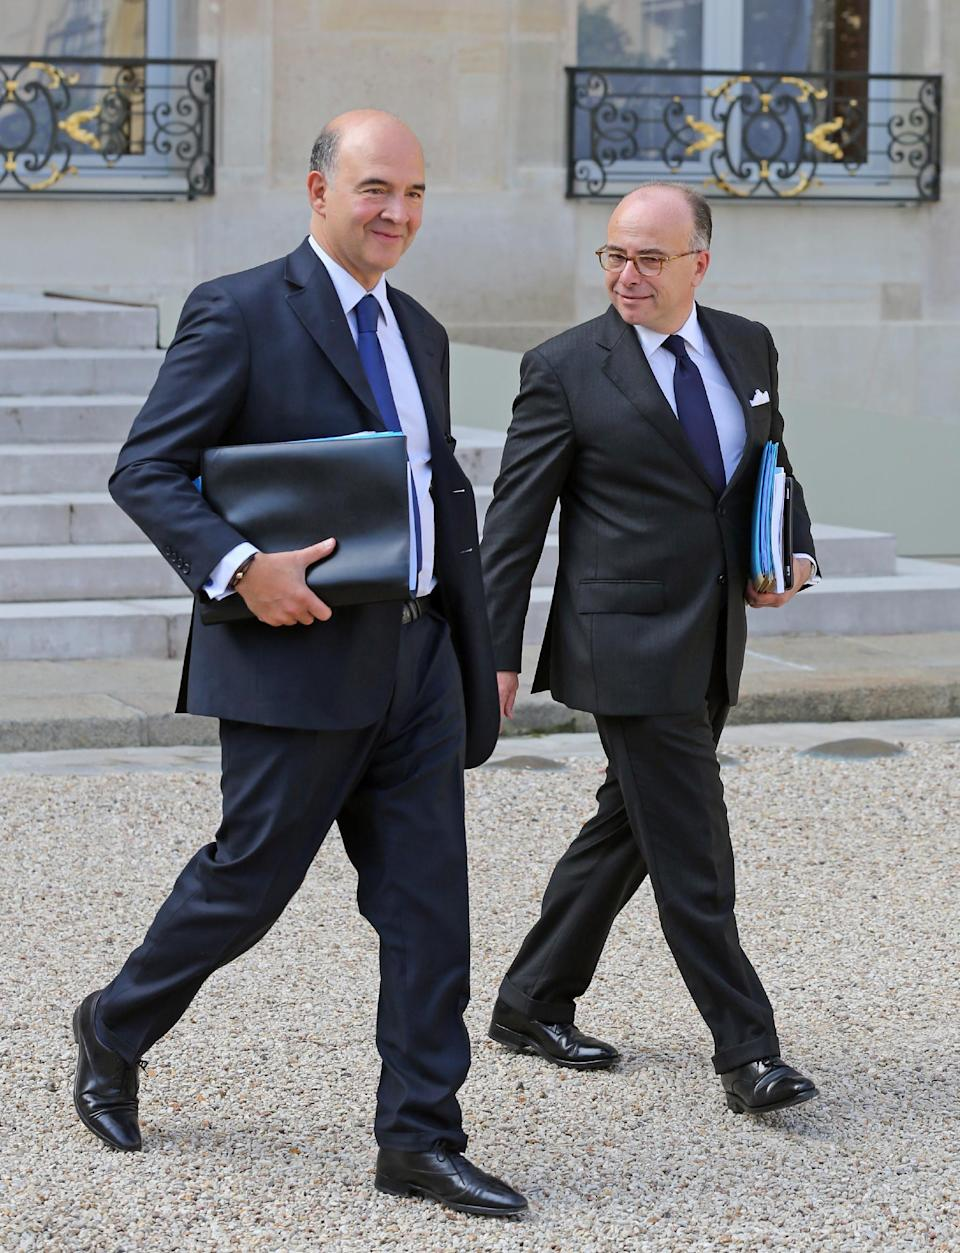 French finance minister Pierre Moscovici, left, and budget minister Bernard Cazeneuve, right, leave the Elysee Palace following the weekly cabinet meeting in Paris, Wednesday Sept. 25, 2013. The French government has declared the economic crisis over and is promising that its budget for next year will bring growth and jobs, but experts are criticizing the proposal from all sides and a true rebound looks way off.(AP Photo/Remy de la Mauviniere)